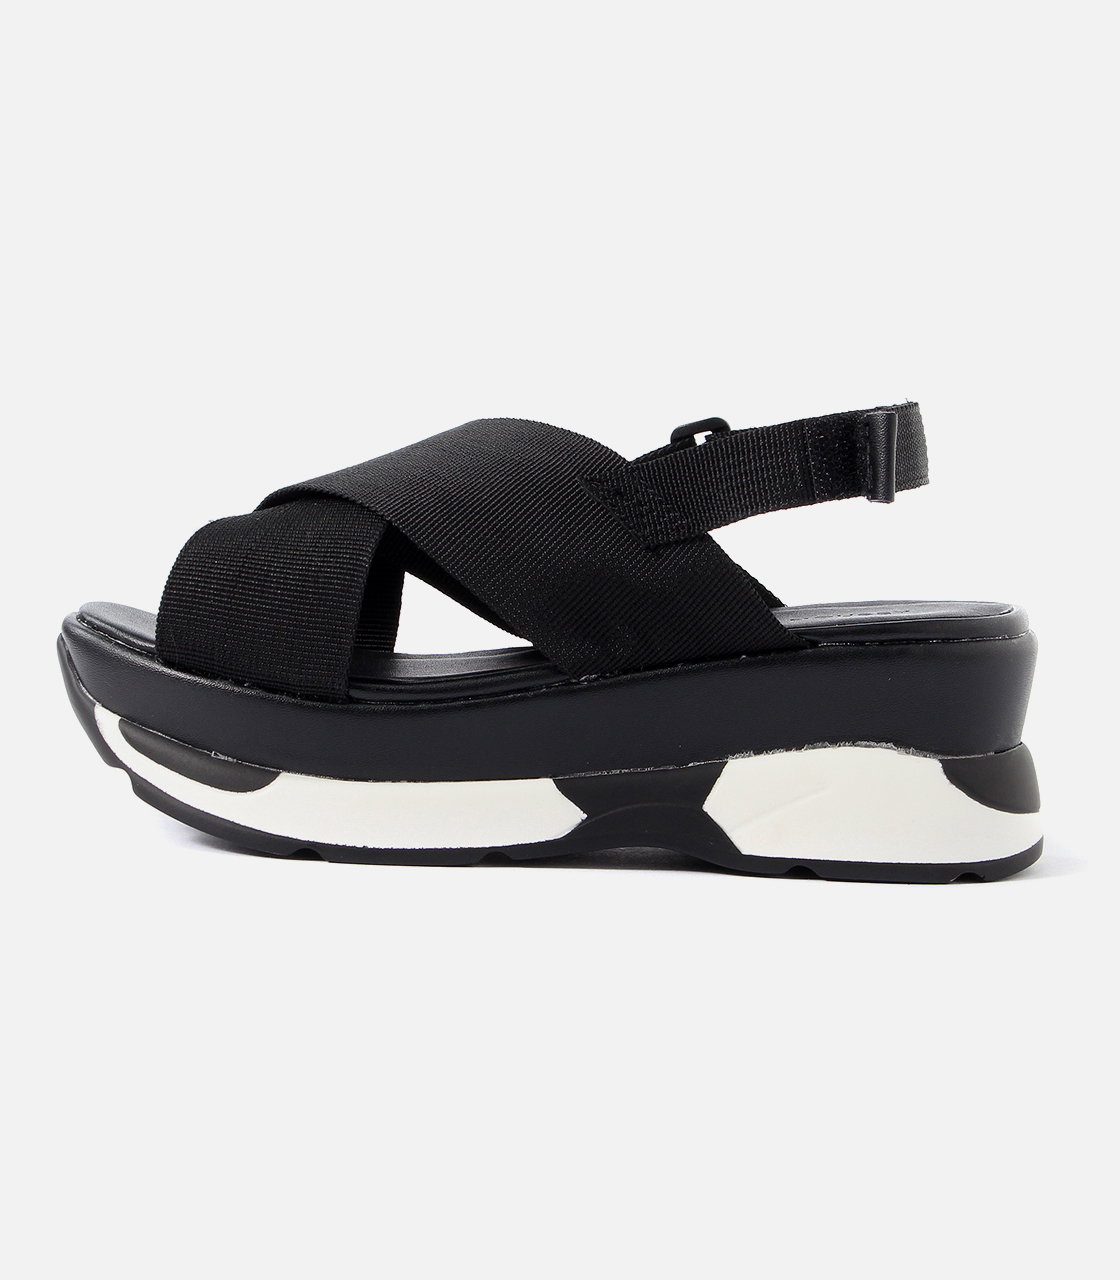 【AZUL BY MOUSSY】CROSS SPORTY SANDALS 詳細画像 柄BLK 2